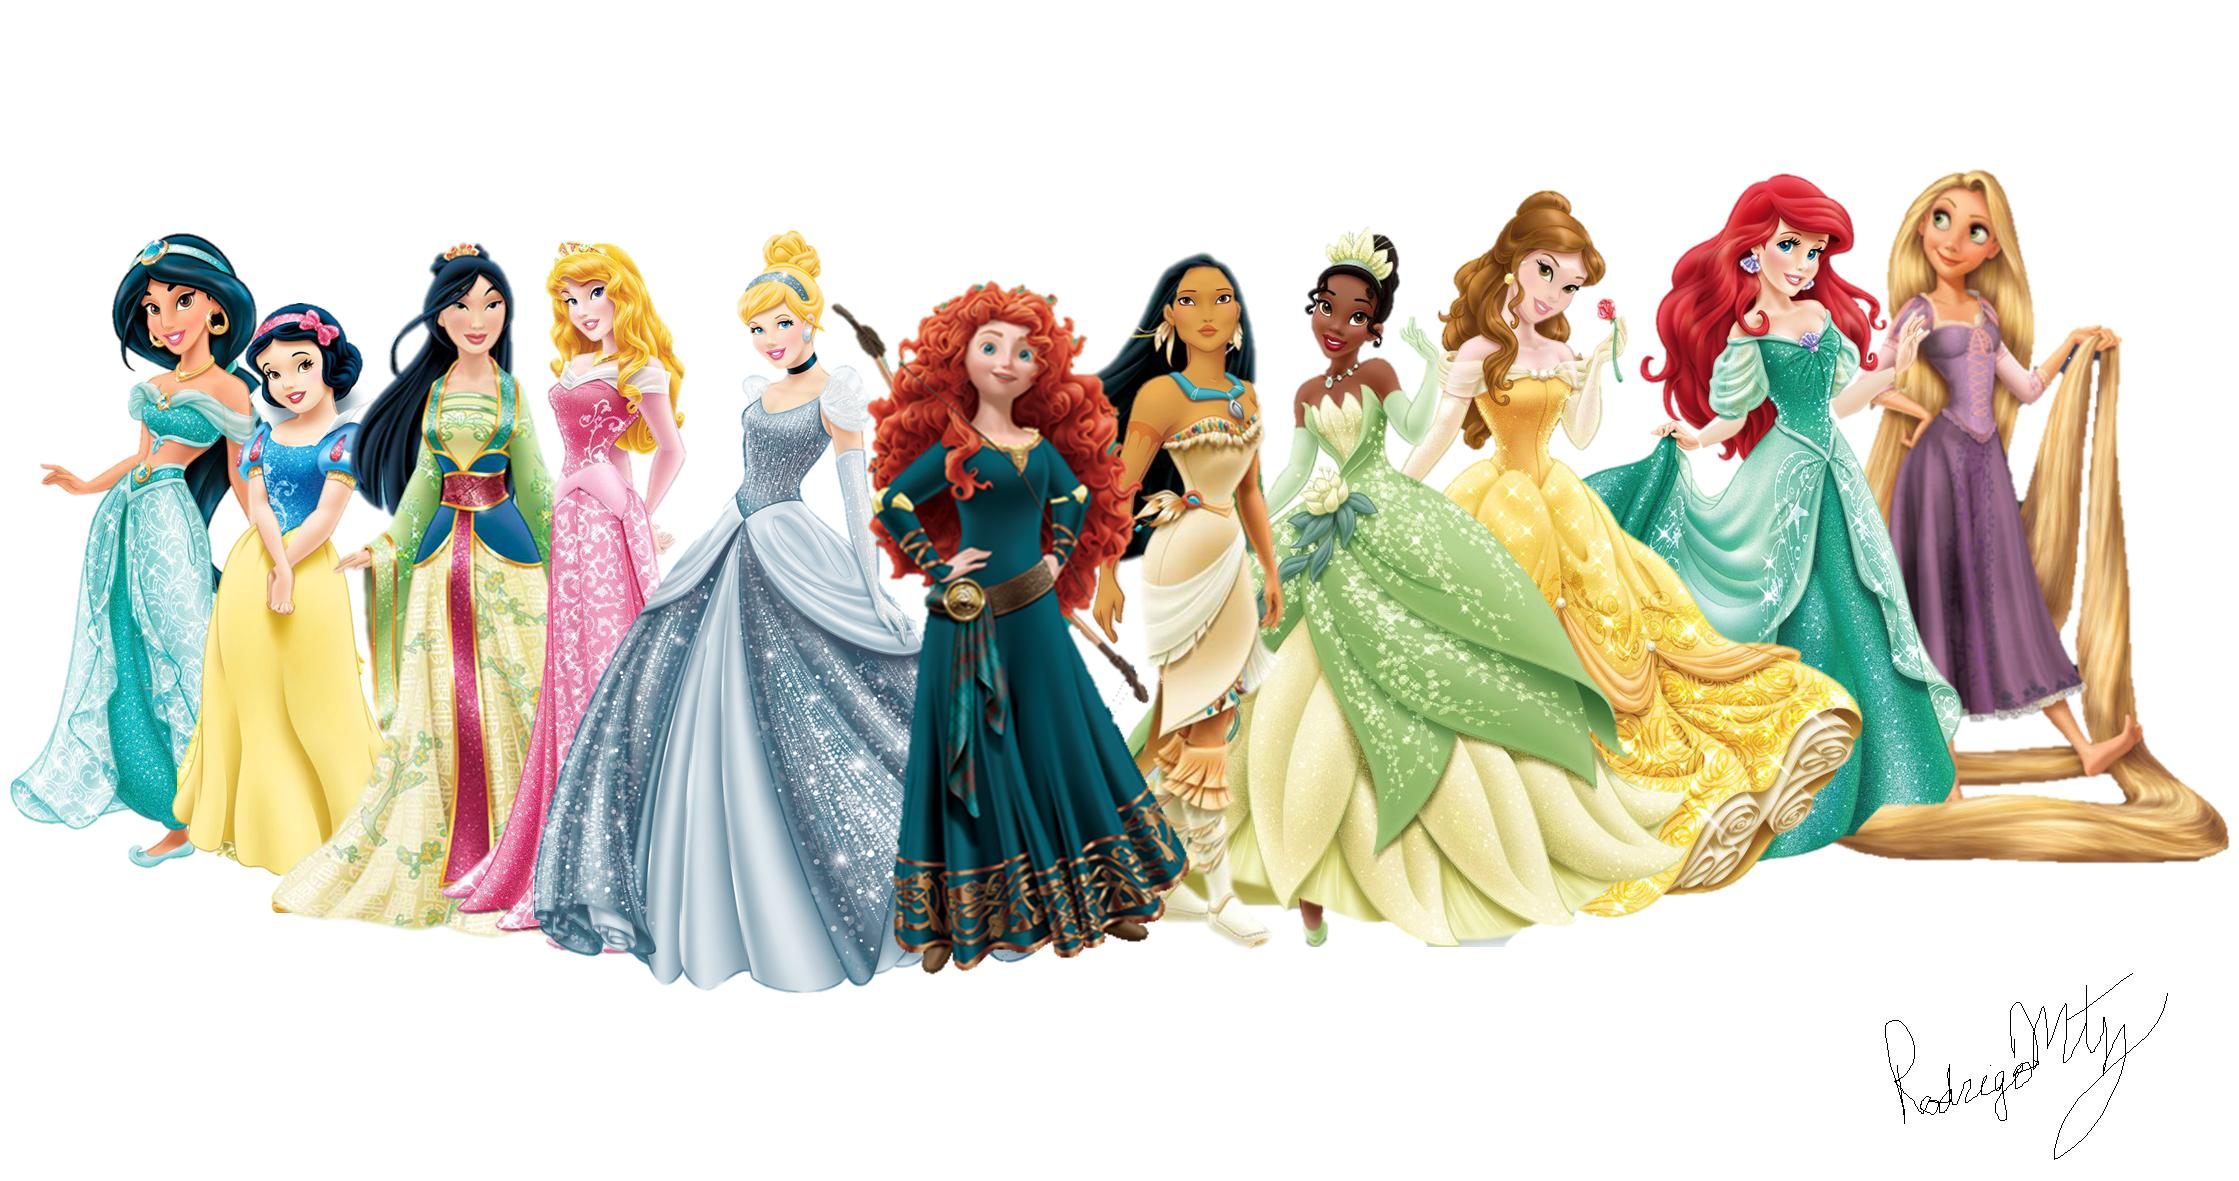 Disney Princess re-desgin dresses